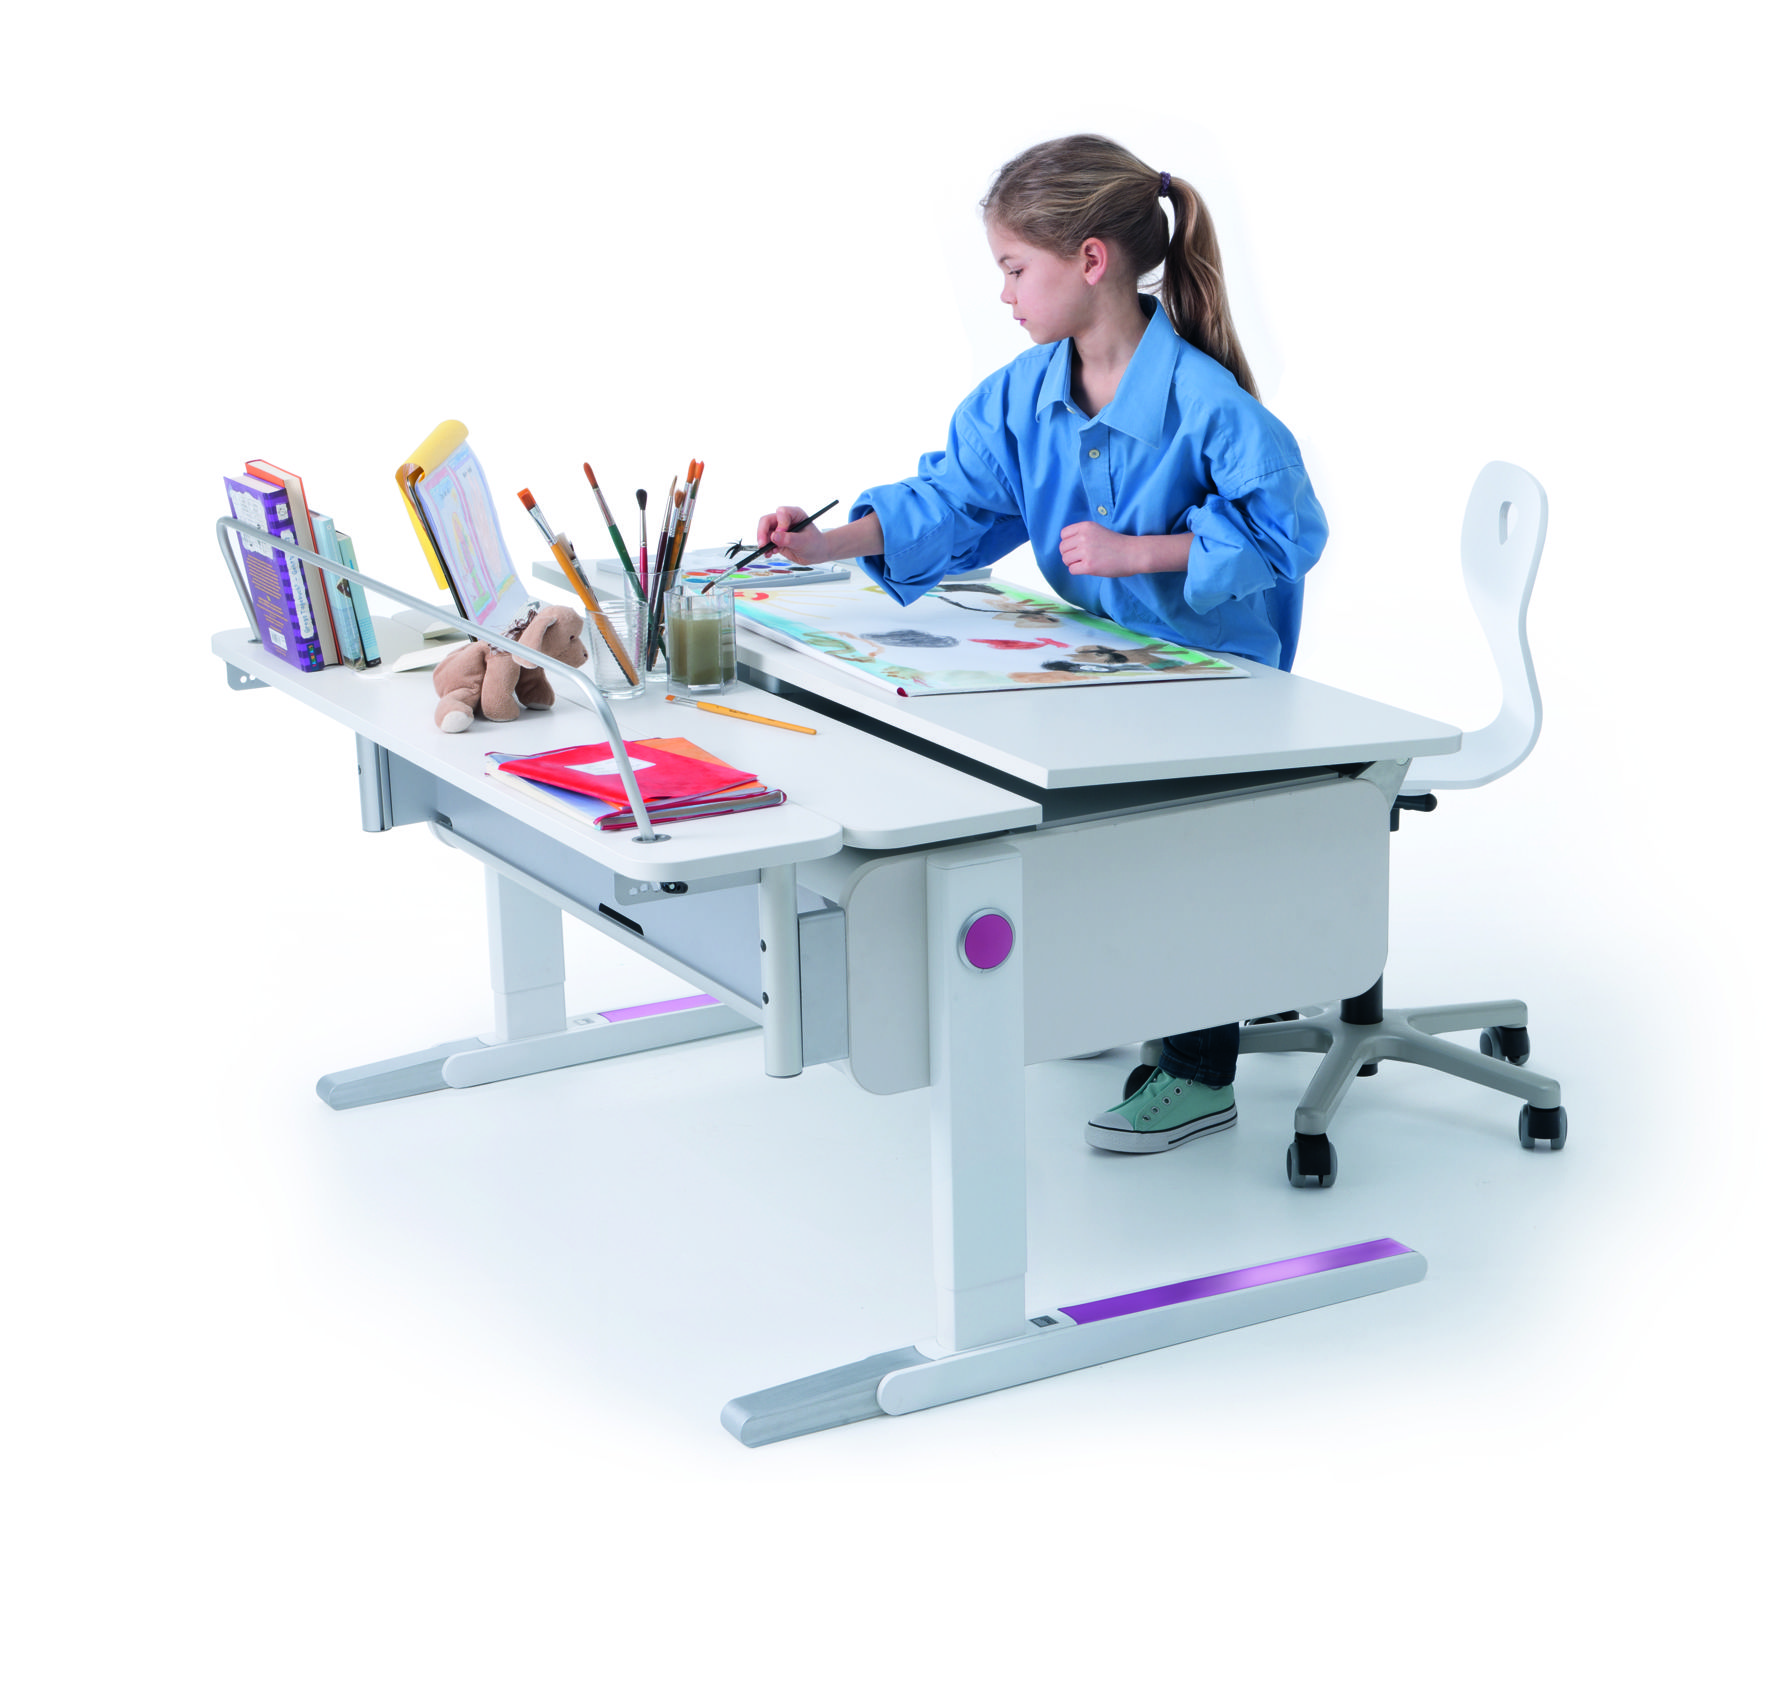 Champion desk by Moll with Multi Deck depth extension